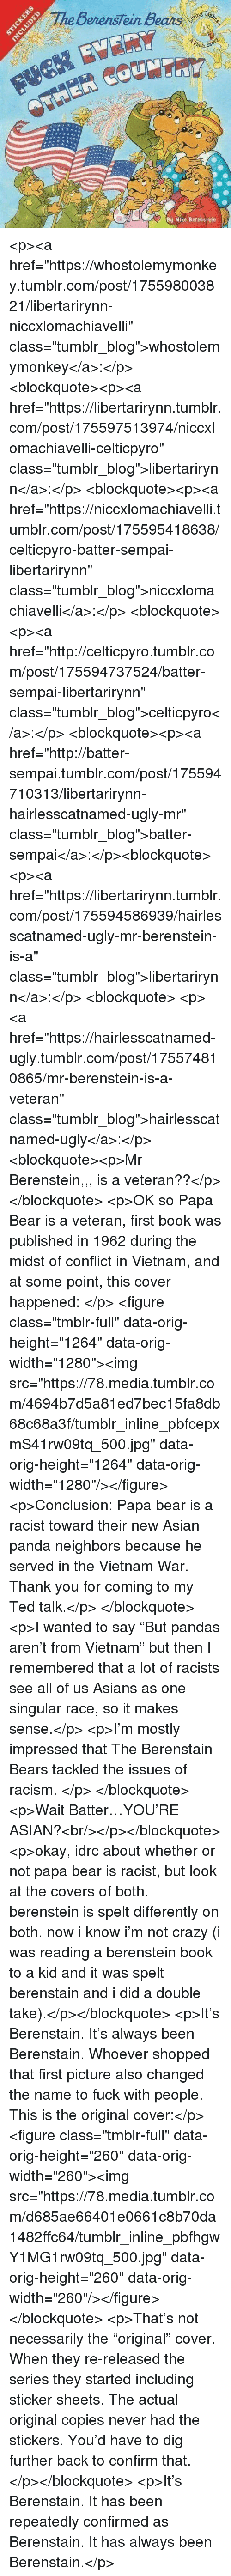 "Asian, Berenstain Bears, and Crazy: BerensTein Bears  ith  By Mike Berenstein <p><a href=""https://whostolemymonkey.tumblr.com/post/175598003821/libertarirynn-niccxlomachiavelli"" class=""tumblr_blog"">whostolemymonkey</a>:</p>  <blockquote><p><a href=""https://libertarirynn.tumblr.com/post/175597513974/niccxlomachiavelli-celticpyro"" class=""tumblr_blog"">libertarirynn</a>:</p>  <blockquote><p><a href=""https://niccxlomachiavelli.tumblr.com/post/175595418638/celticpyro-batter-sempai-libertarirynn"" class=""tumblr_blog"">niccxlomachiavelli</a>:</p>  <blockquote><p><a href=""http://celticpyro.tumblr.com/post/175594737524/batter-sempai-libertarirynn"" class=""tumblr_blog"">celticpyro</a>:</p>  <blockquote><p><a href=""http://batter-sempai.tumblr.com/post/175594710313/libertarirynn-hairlesscatnamed-ugly-mr"" class=""tumblr_blog"">batter-sempai</a>:</p><blockquote> <p><a href=""https://libertarirynn.tumblr.com/post/175594586939/hairlesscatnamed-ugly-mr-berenstein-is-a"" class=""tumblr_blog"">libertarirynn</a>:</p>  <blockquote> <p><a href=""https://hairlesscatnamed-ugly.tumblr.com/post/175574810865/mr-berenstein-is-a-veteran"" class=""tumblr_blog"">hairlesscatnamed-ugly</a>:</p>  <blockquote><p>Mr Berenstein,,, is a veteran??</p></blockquote>  <p>OK so Papa Bear is a veteran, first book was published in 1962 during the midst of conflict in Vietnam, and at some point, this cover happened: </p> <figure class=""tmblr-full"" data-orig-height=""1264"" data-orig-width=""1280""><img src=""https://78.media.tumblr.com/4694b7d5a81ed7bec15fa8db68c68a3f/tumblr_inline_pbfcepxmS41rw09tq_500.jpg"" data-orig-height=""1264"" data-orig-width=""1280""/></figure><p>Conclusion: Papa bear is a racist toward their new Asian panda neighbors because he served in the Vietnam War. Thank you for coming to my Ted talk.</p> </blockquote>  <p>I wanted to say ""But pandas aren't from Vietnam"" but then I remembered that a lot of racists see all of us Asians as one singular race, so it makes sense.</p> <p>I'm mostly impressed that The Berenstain Bears tackled the issues of racism. </p> </blockquote> <p>Wait Batter…YOU'RE ASIAN?<br/></p></blockquote>  <p>okay, idrc about whether or not papa bear is racist, but look at the covers of both. berenstein is spelt differently on both. now i know i'm not crazy (i was reading a berenstein book to a kid and it was spelt berenstain and i did a double take).</p></blockquote>  <p>It's Berenstain. It's always been Berenstain. Whoever shopped that first picture also changed the name to fuck with people. This is the original cover:</p><figure class=""tmblr-full"" data-orig-height=""260"" data-orig-width=""260""><img src=""https://78.media.tumblr.com/d685ae66401e0661c8b70da1482ffc64/tumblr_inline_pbfhgwY1MG1rw09tq_500.jpg"" data-orig-height=""260"" data-orig-width=""260""/></figure></blockquote>  <p>That's not necessarily the ""original"" cover.  When they re-released the series they started including sticker sheets.  The actual original copies never had the stickers.  You'd have to dig further back to confirm that. </p></blockquote>  <p>It's Berenstain. It has been repeatedly confirmed as Berenstain. It has always been Berenstain.</p>"